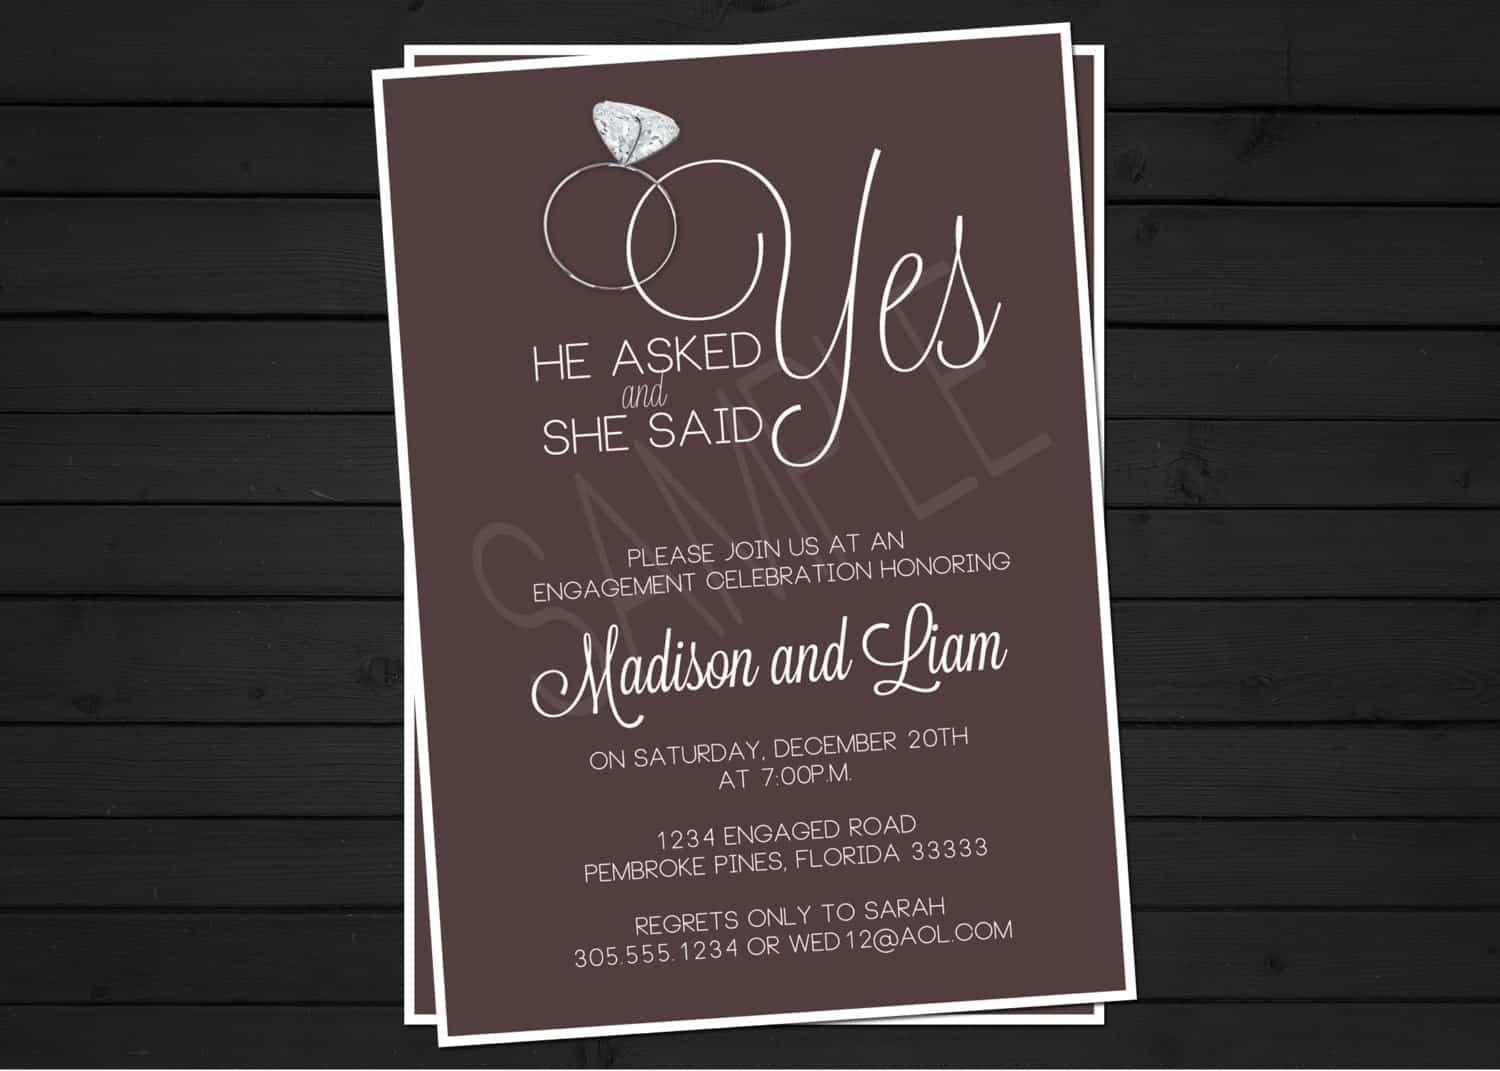 Nice Engagement Party Invitation Wording Free On A Daily Basis Billions Of Birthdays Are Celebrated And Many Events Are Thrown Of Their Honor Although Dengan Gambar Etsy